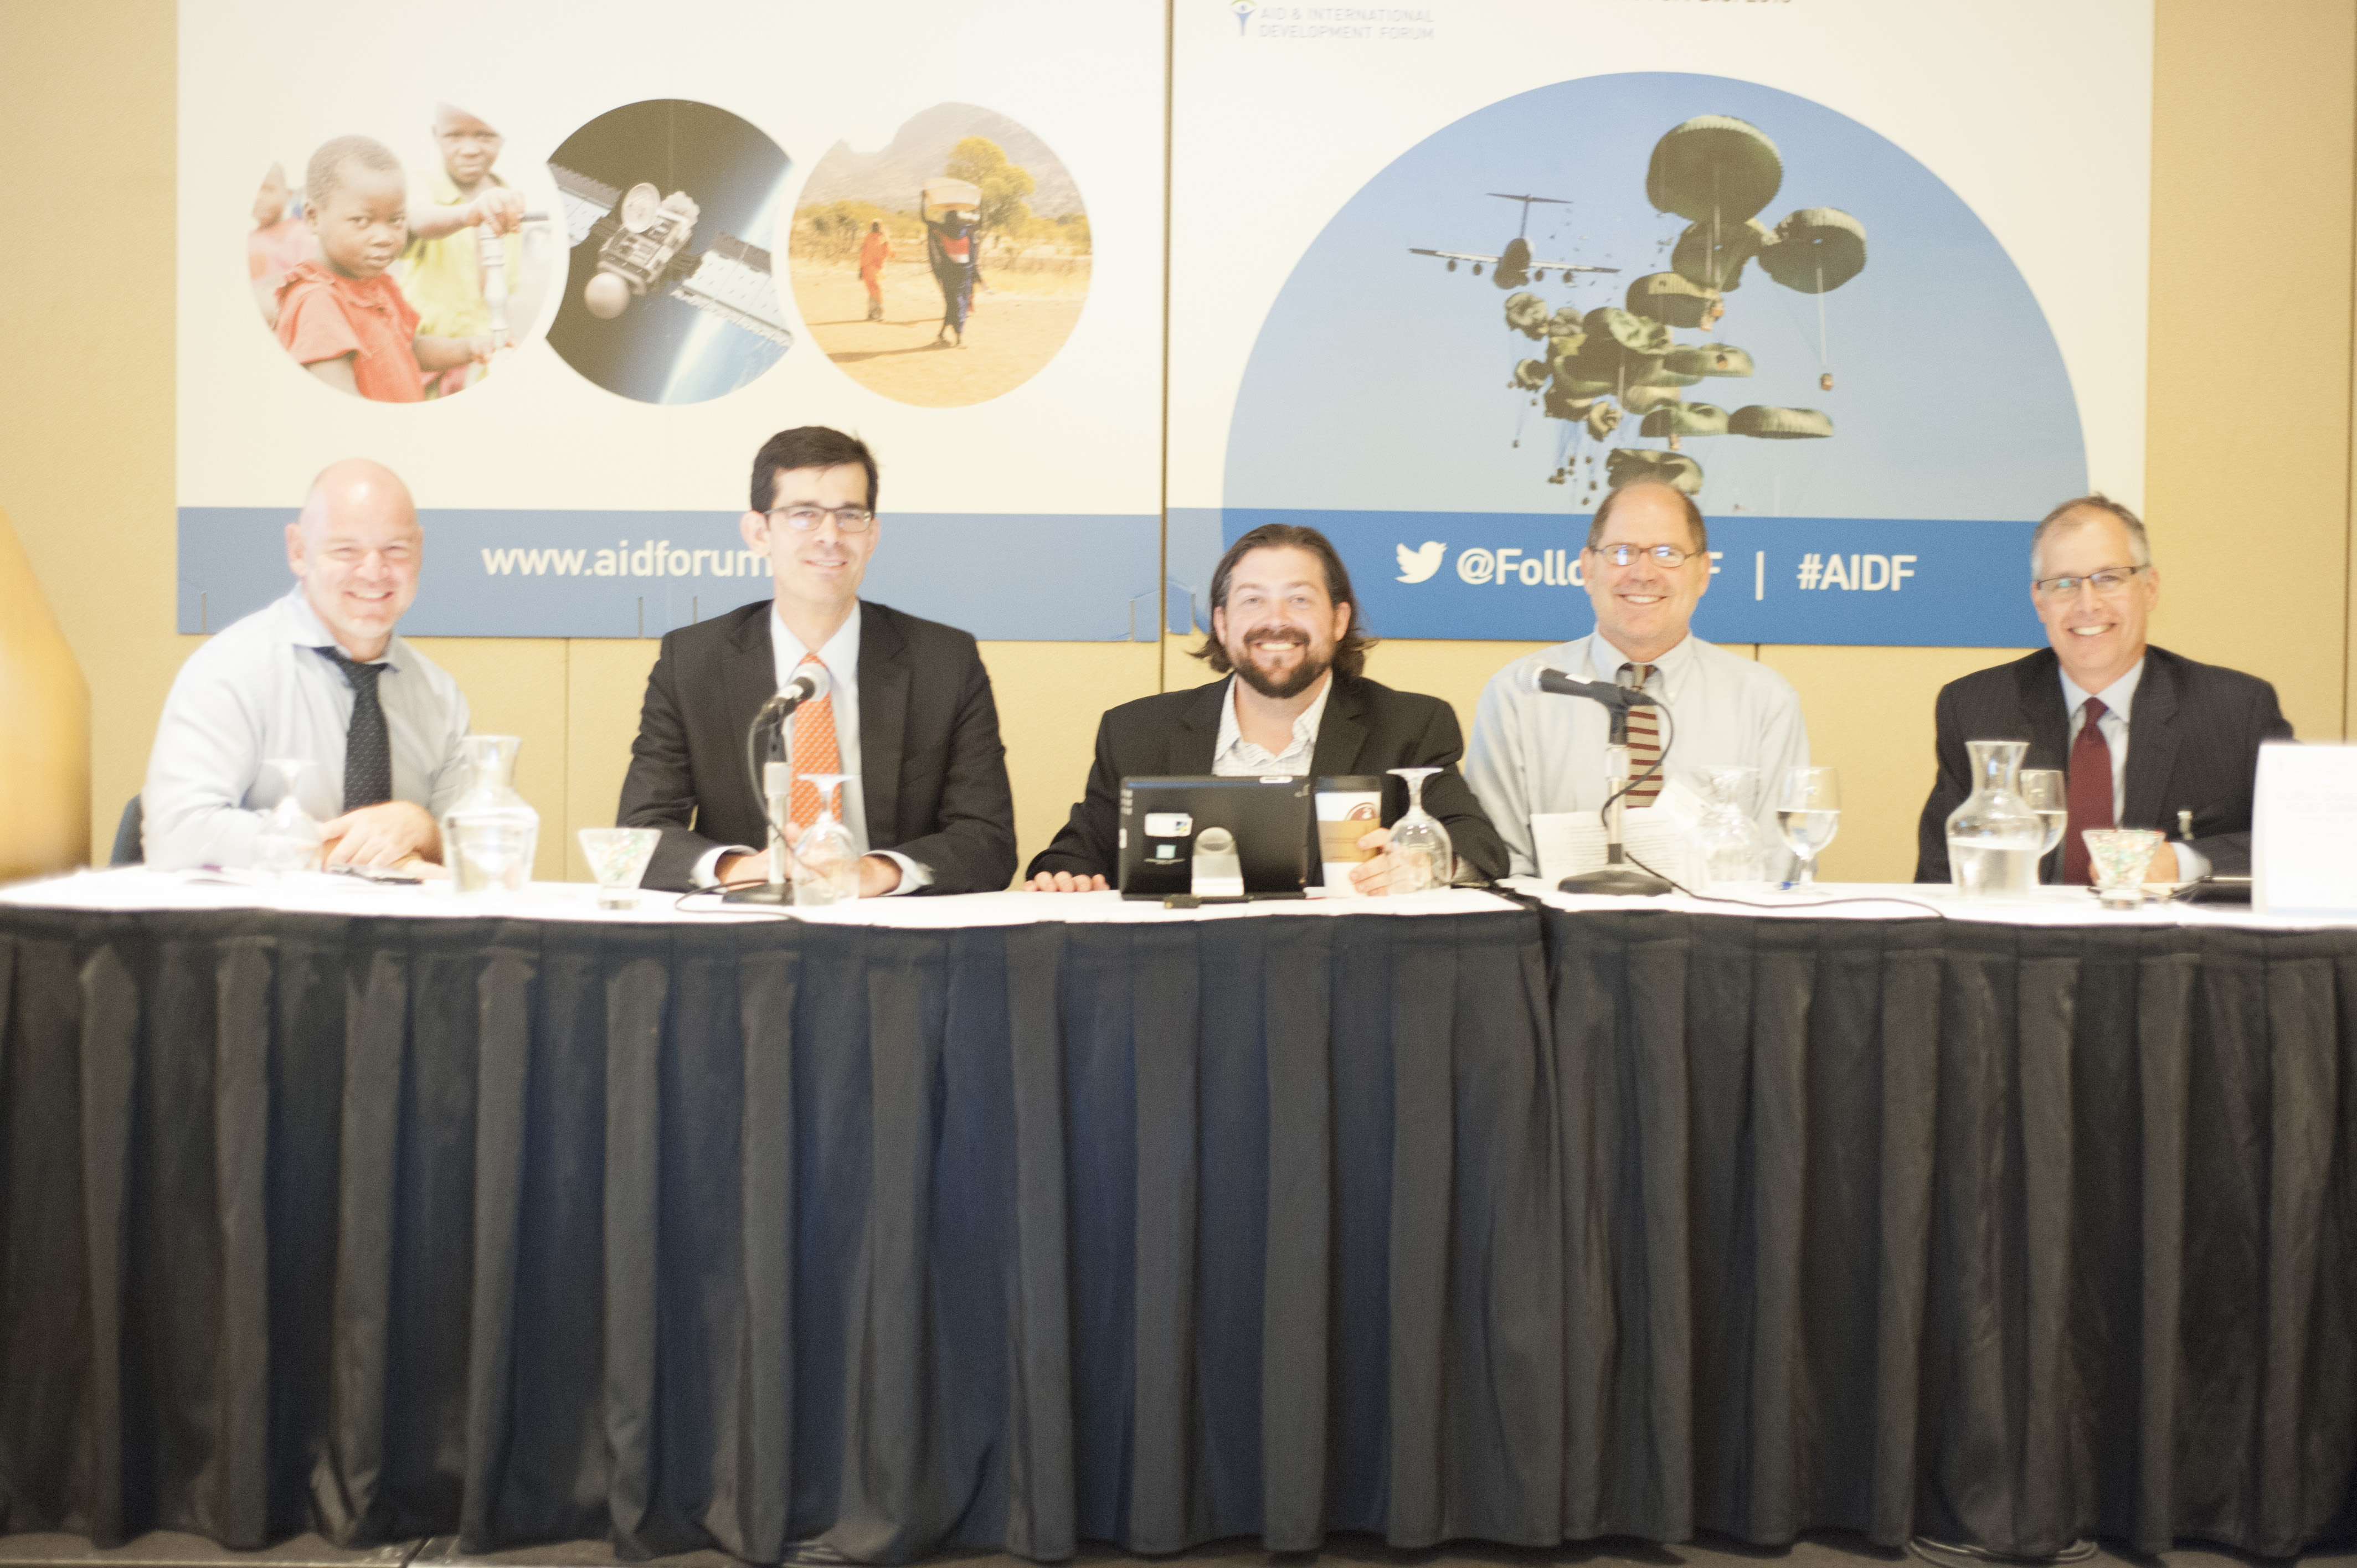 Annual AIDF Global Disaster Relief Summit Concluded in Washington D.C.